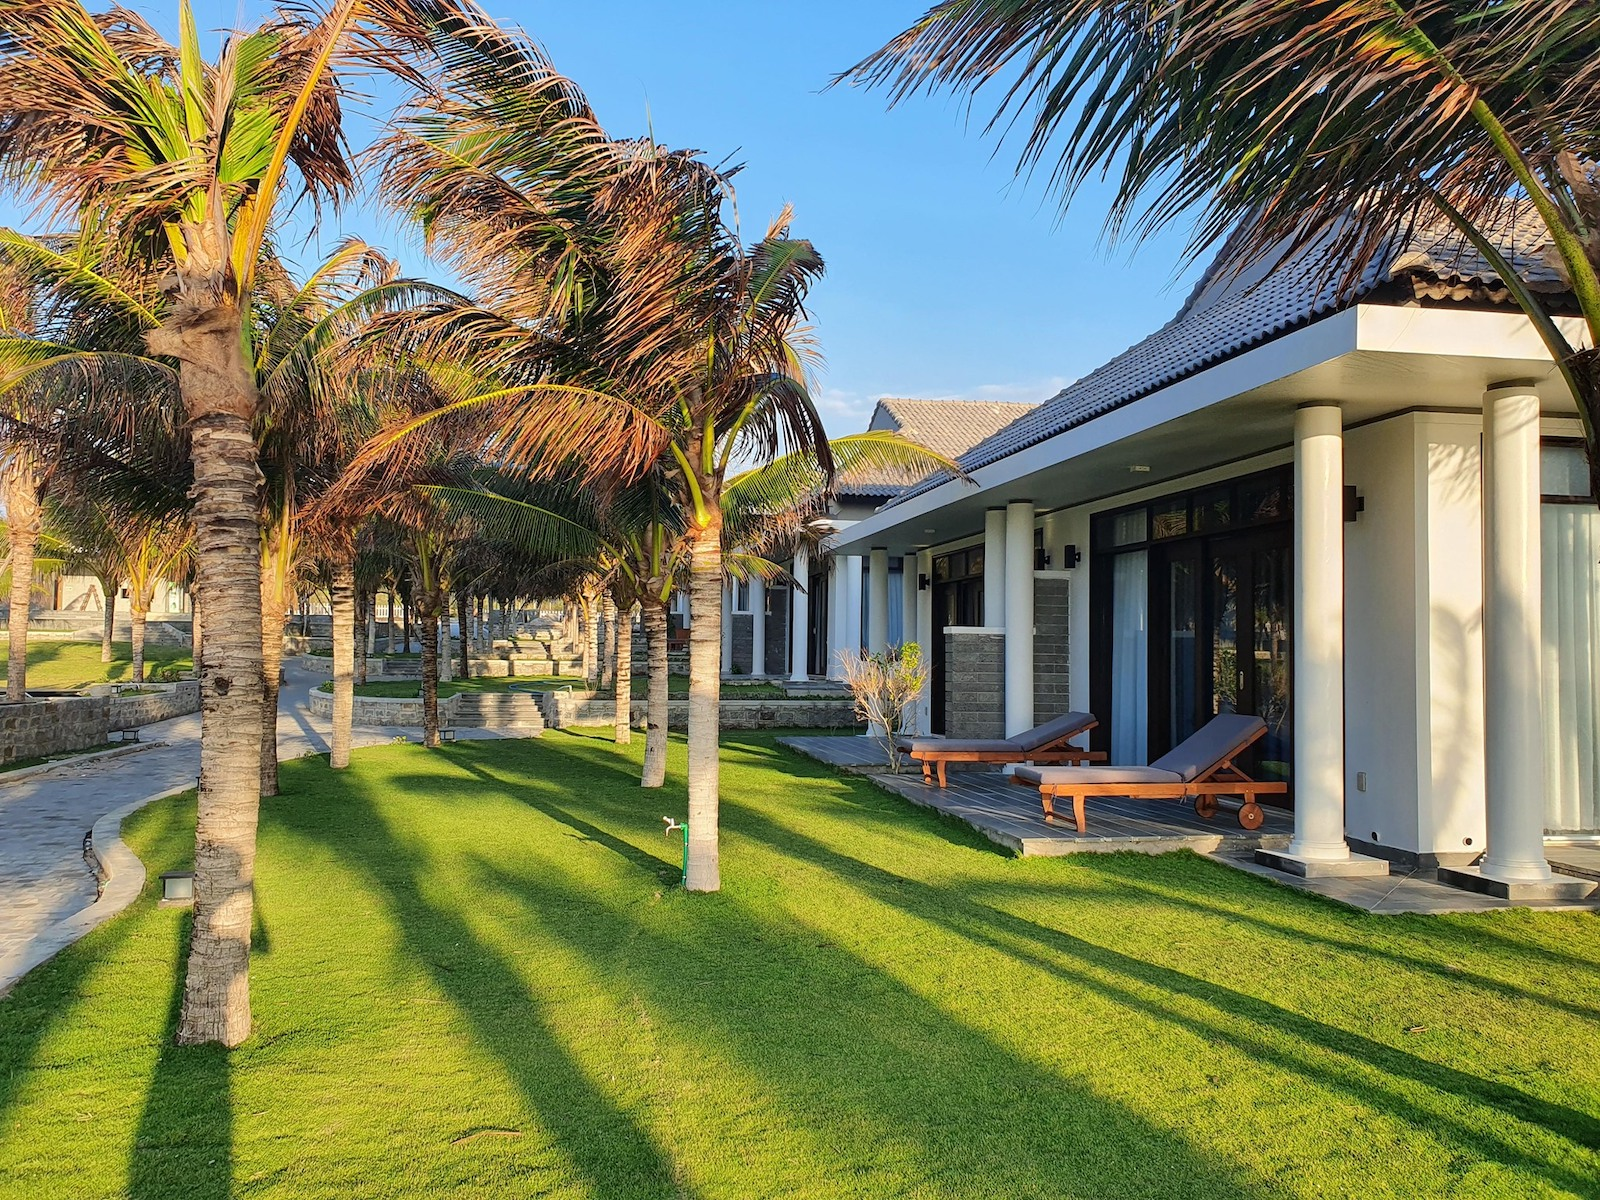 Image of an overnight accommodation at Starlight Villa Beach Resort and Spa in Phan Thiet, Vietnam